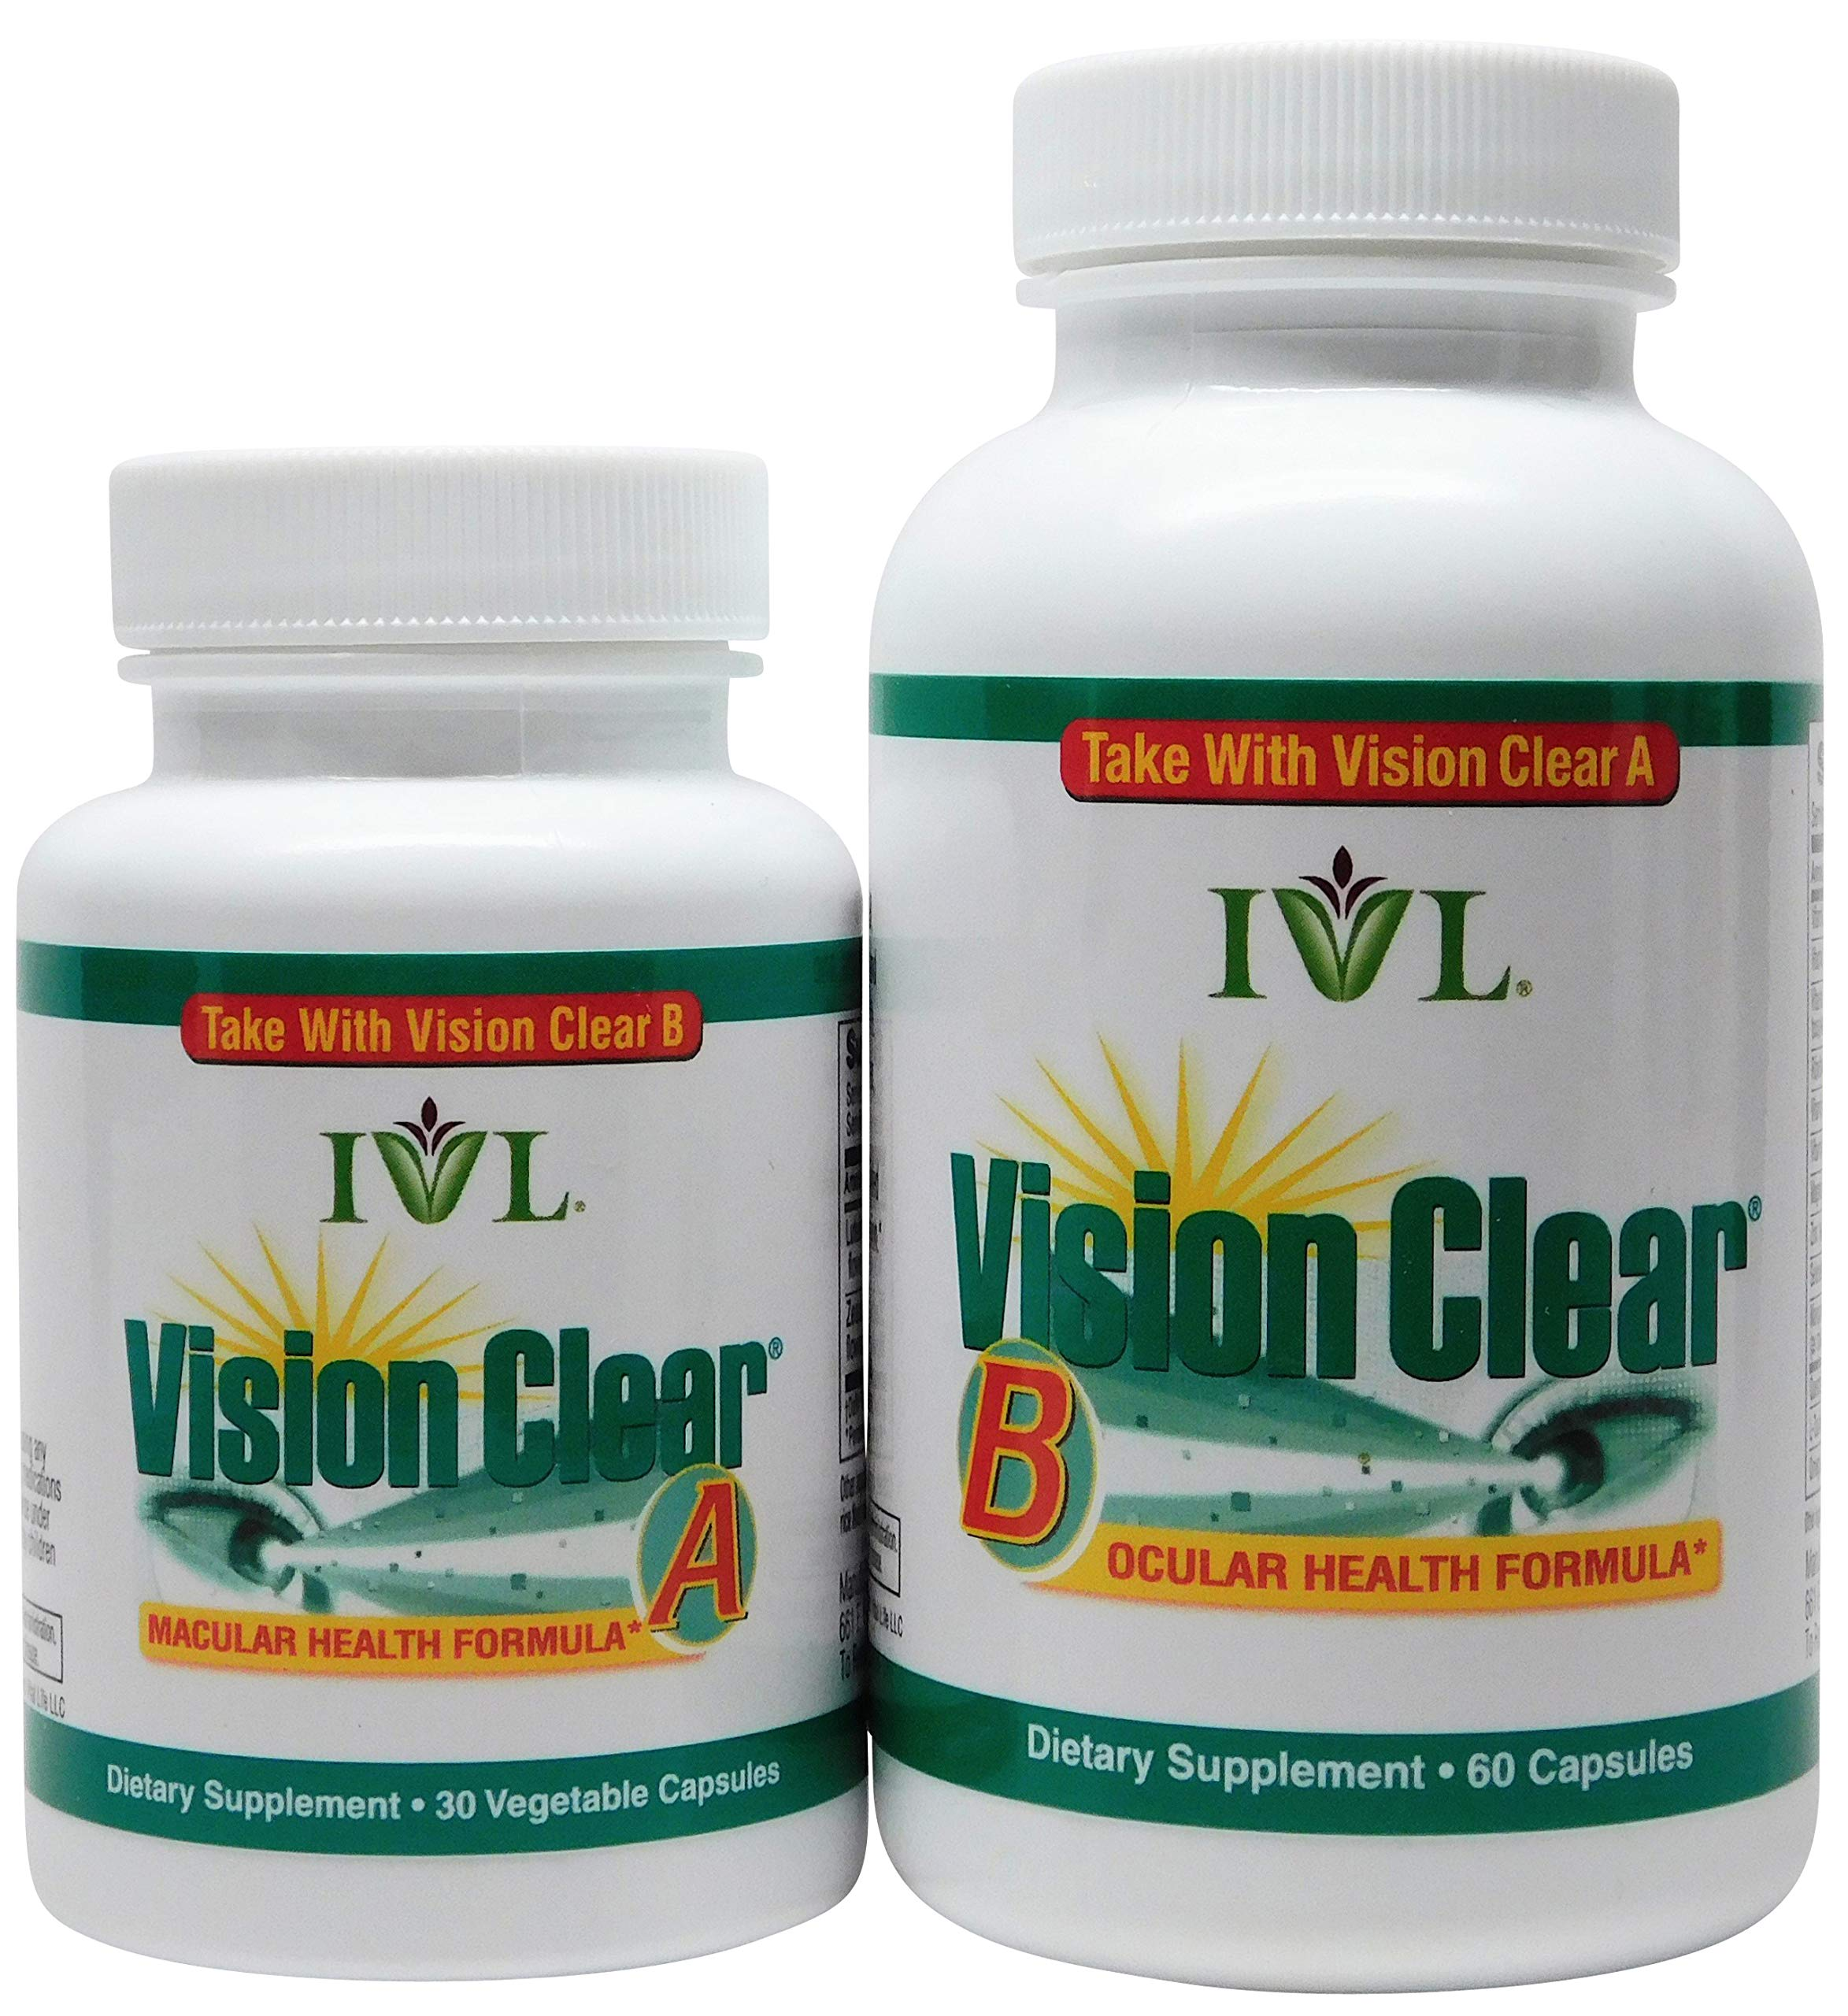 IVL – Vision Clear Macular & Ocular Health Formula, 90 Capsules (1 Month Supply)